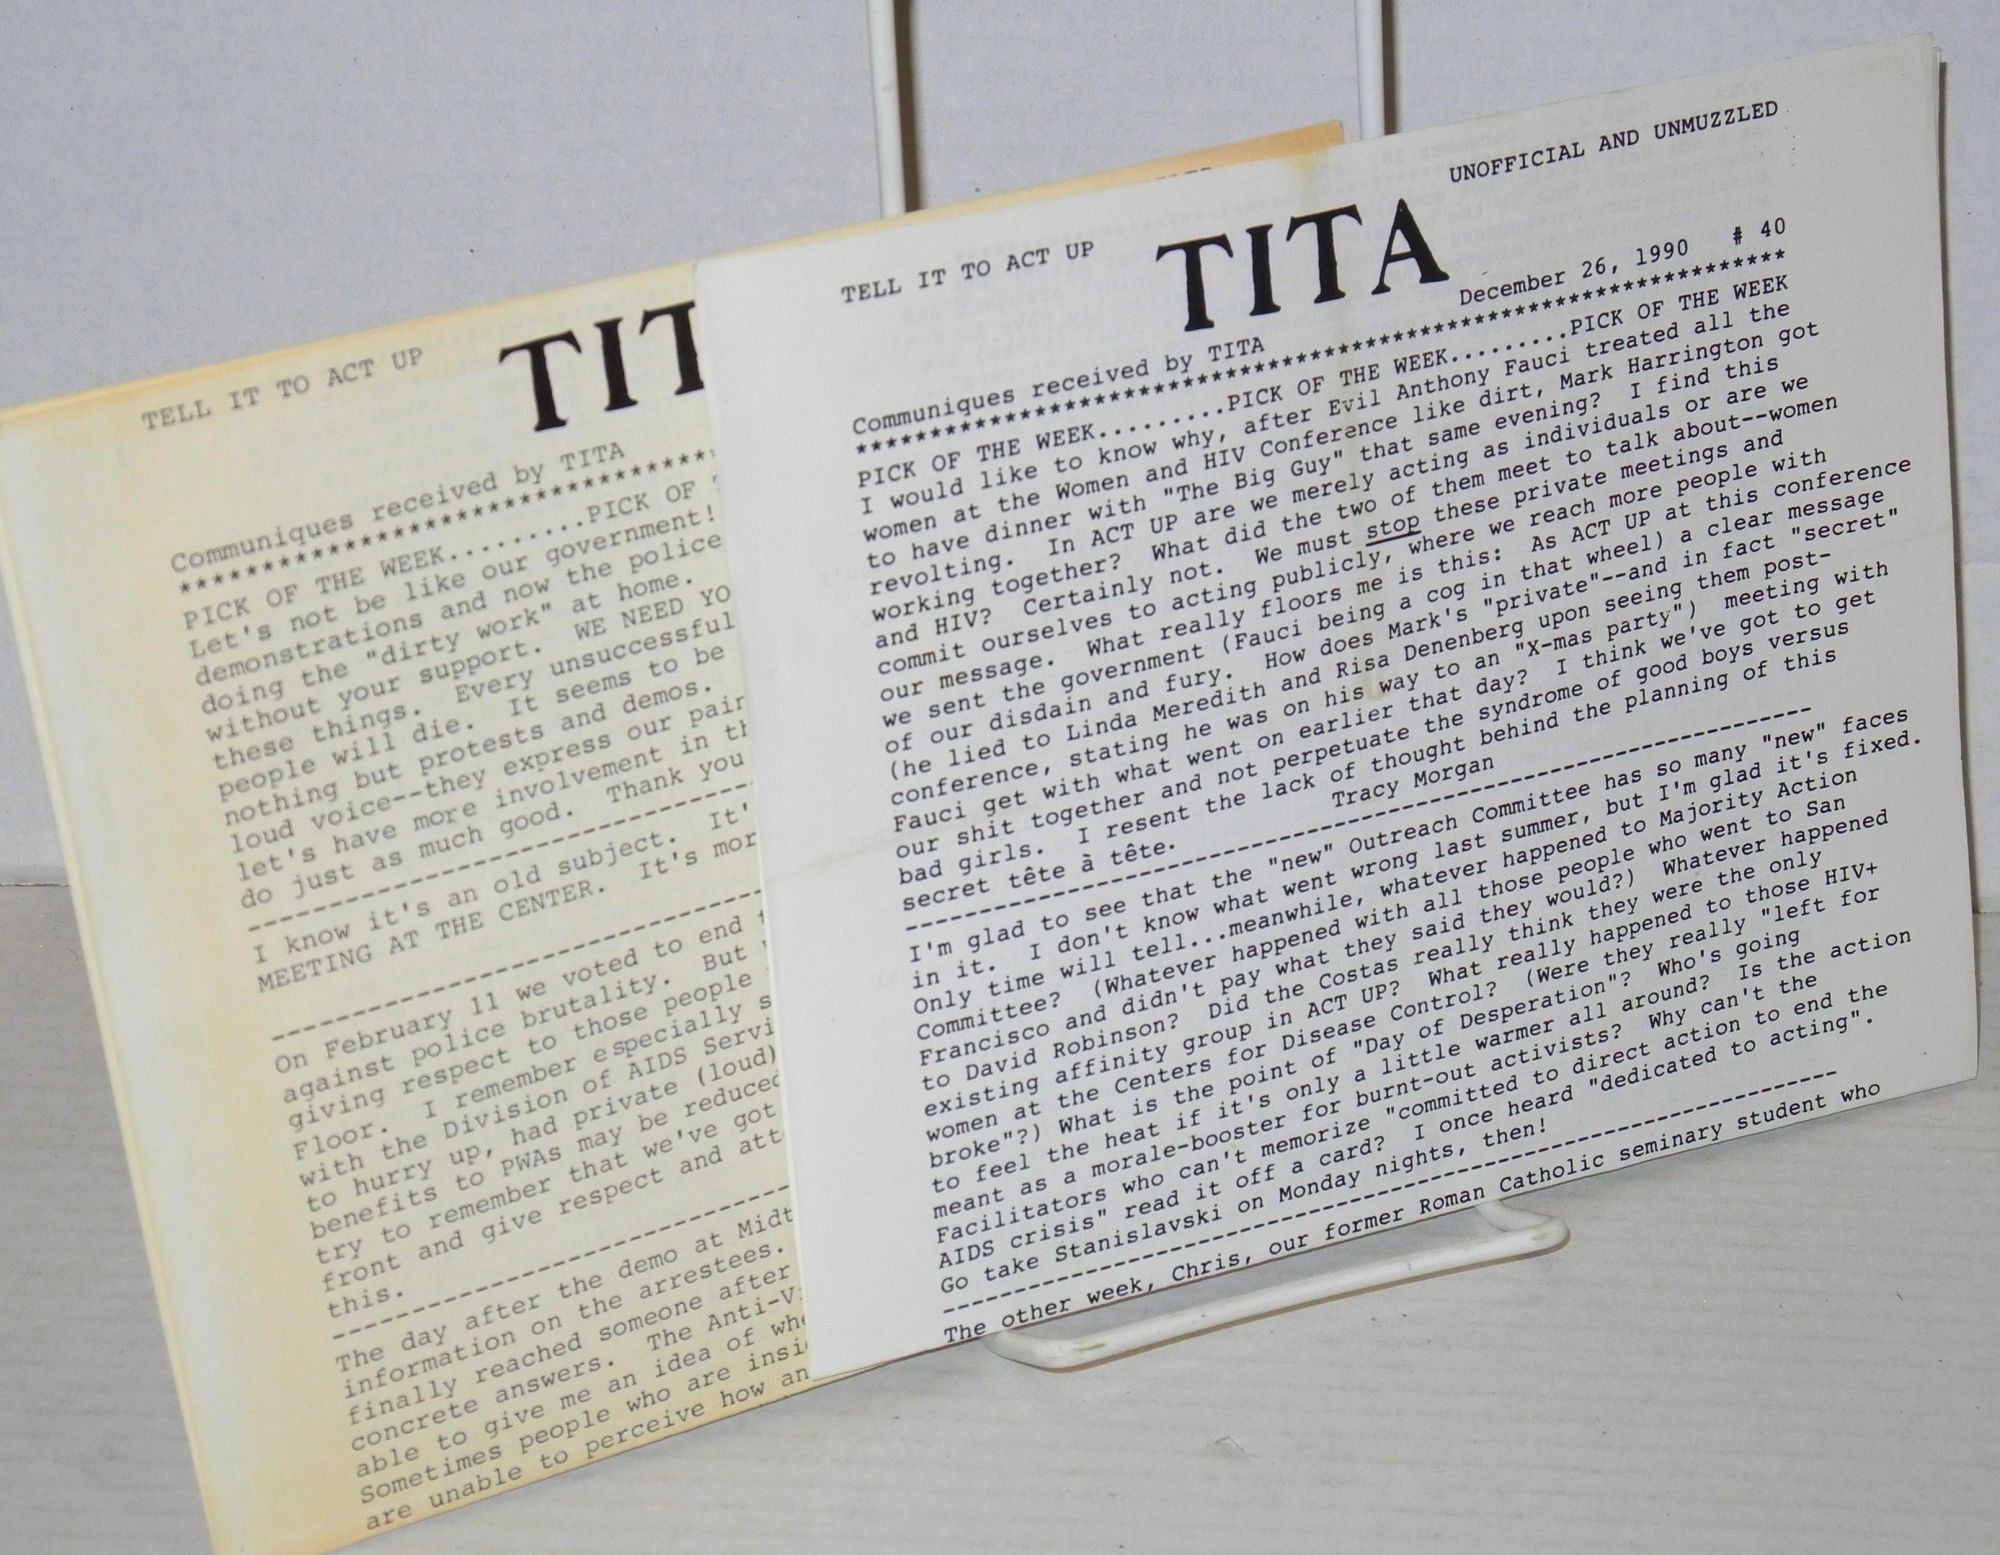 TITA: Tell it to ACT UP: unofficial and unmuzzled; communiques received by TITA; #40 & #49, December 26, 1990 & February 25, 1991 [two issues] Dobbs,